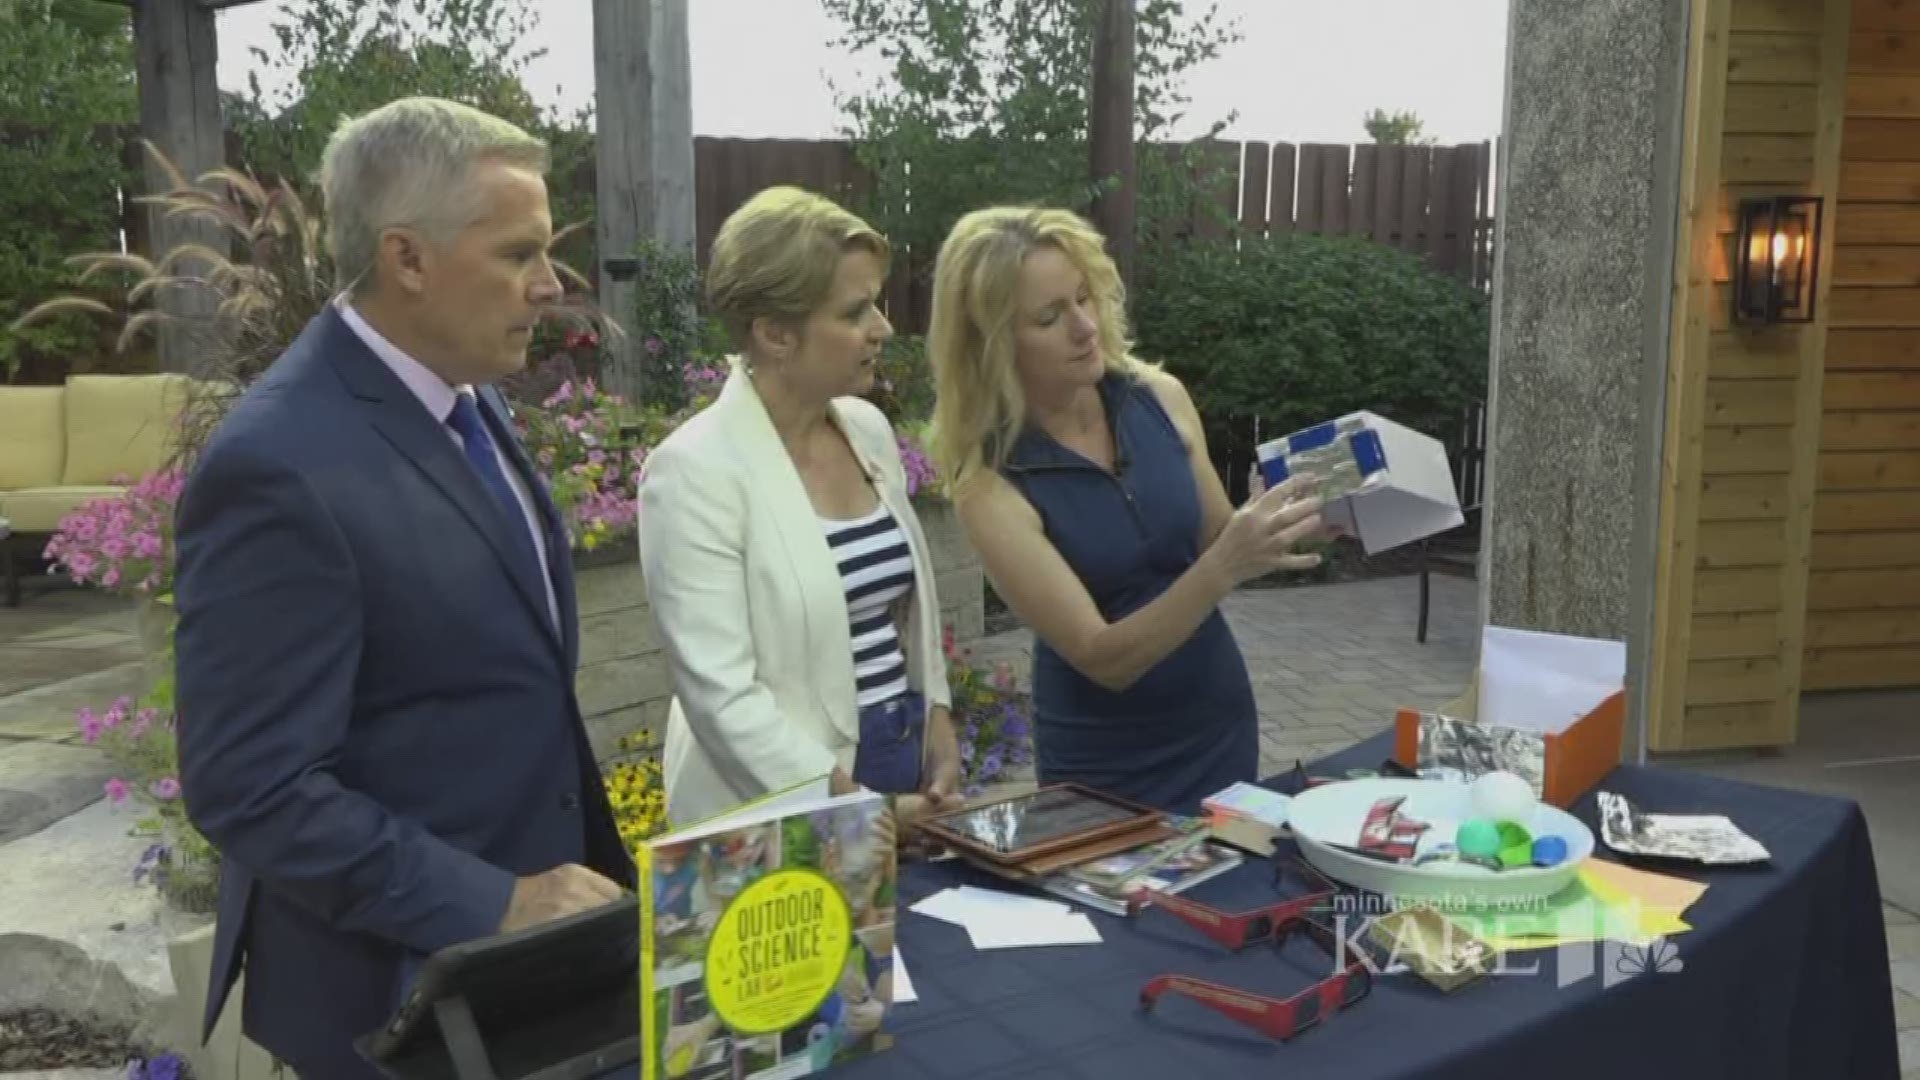 Diy Solar Eclipse Viewing From The Kitchen Pantry Scientist Kare11 Com